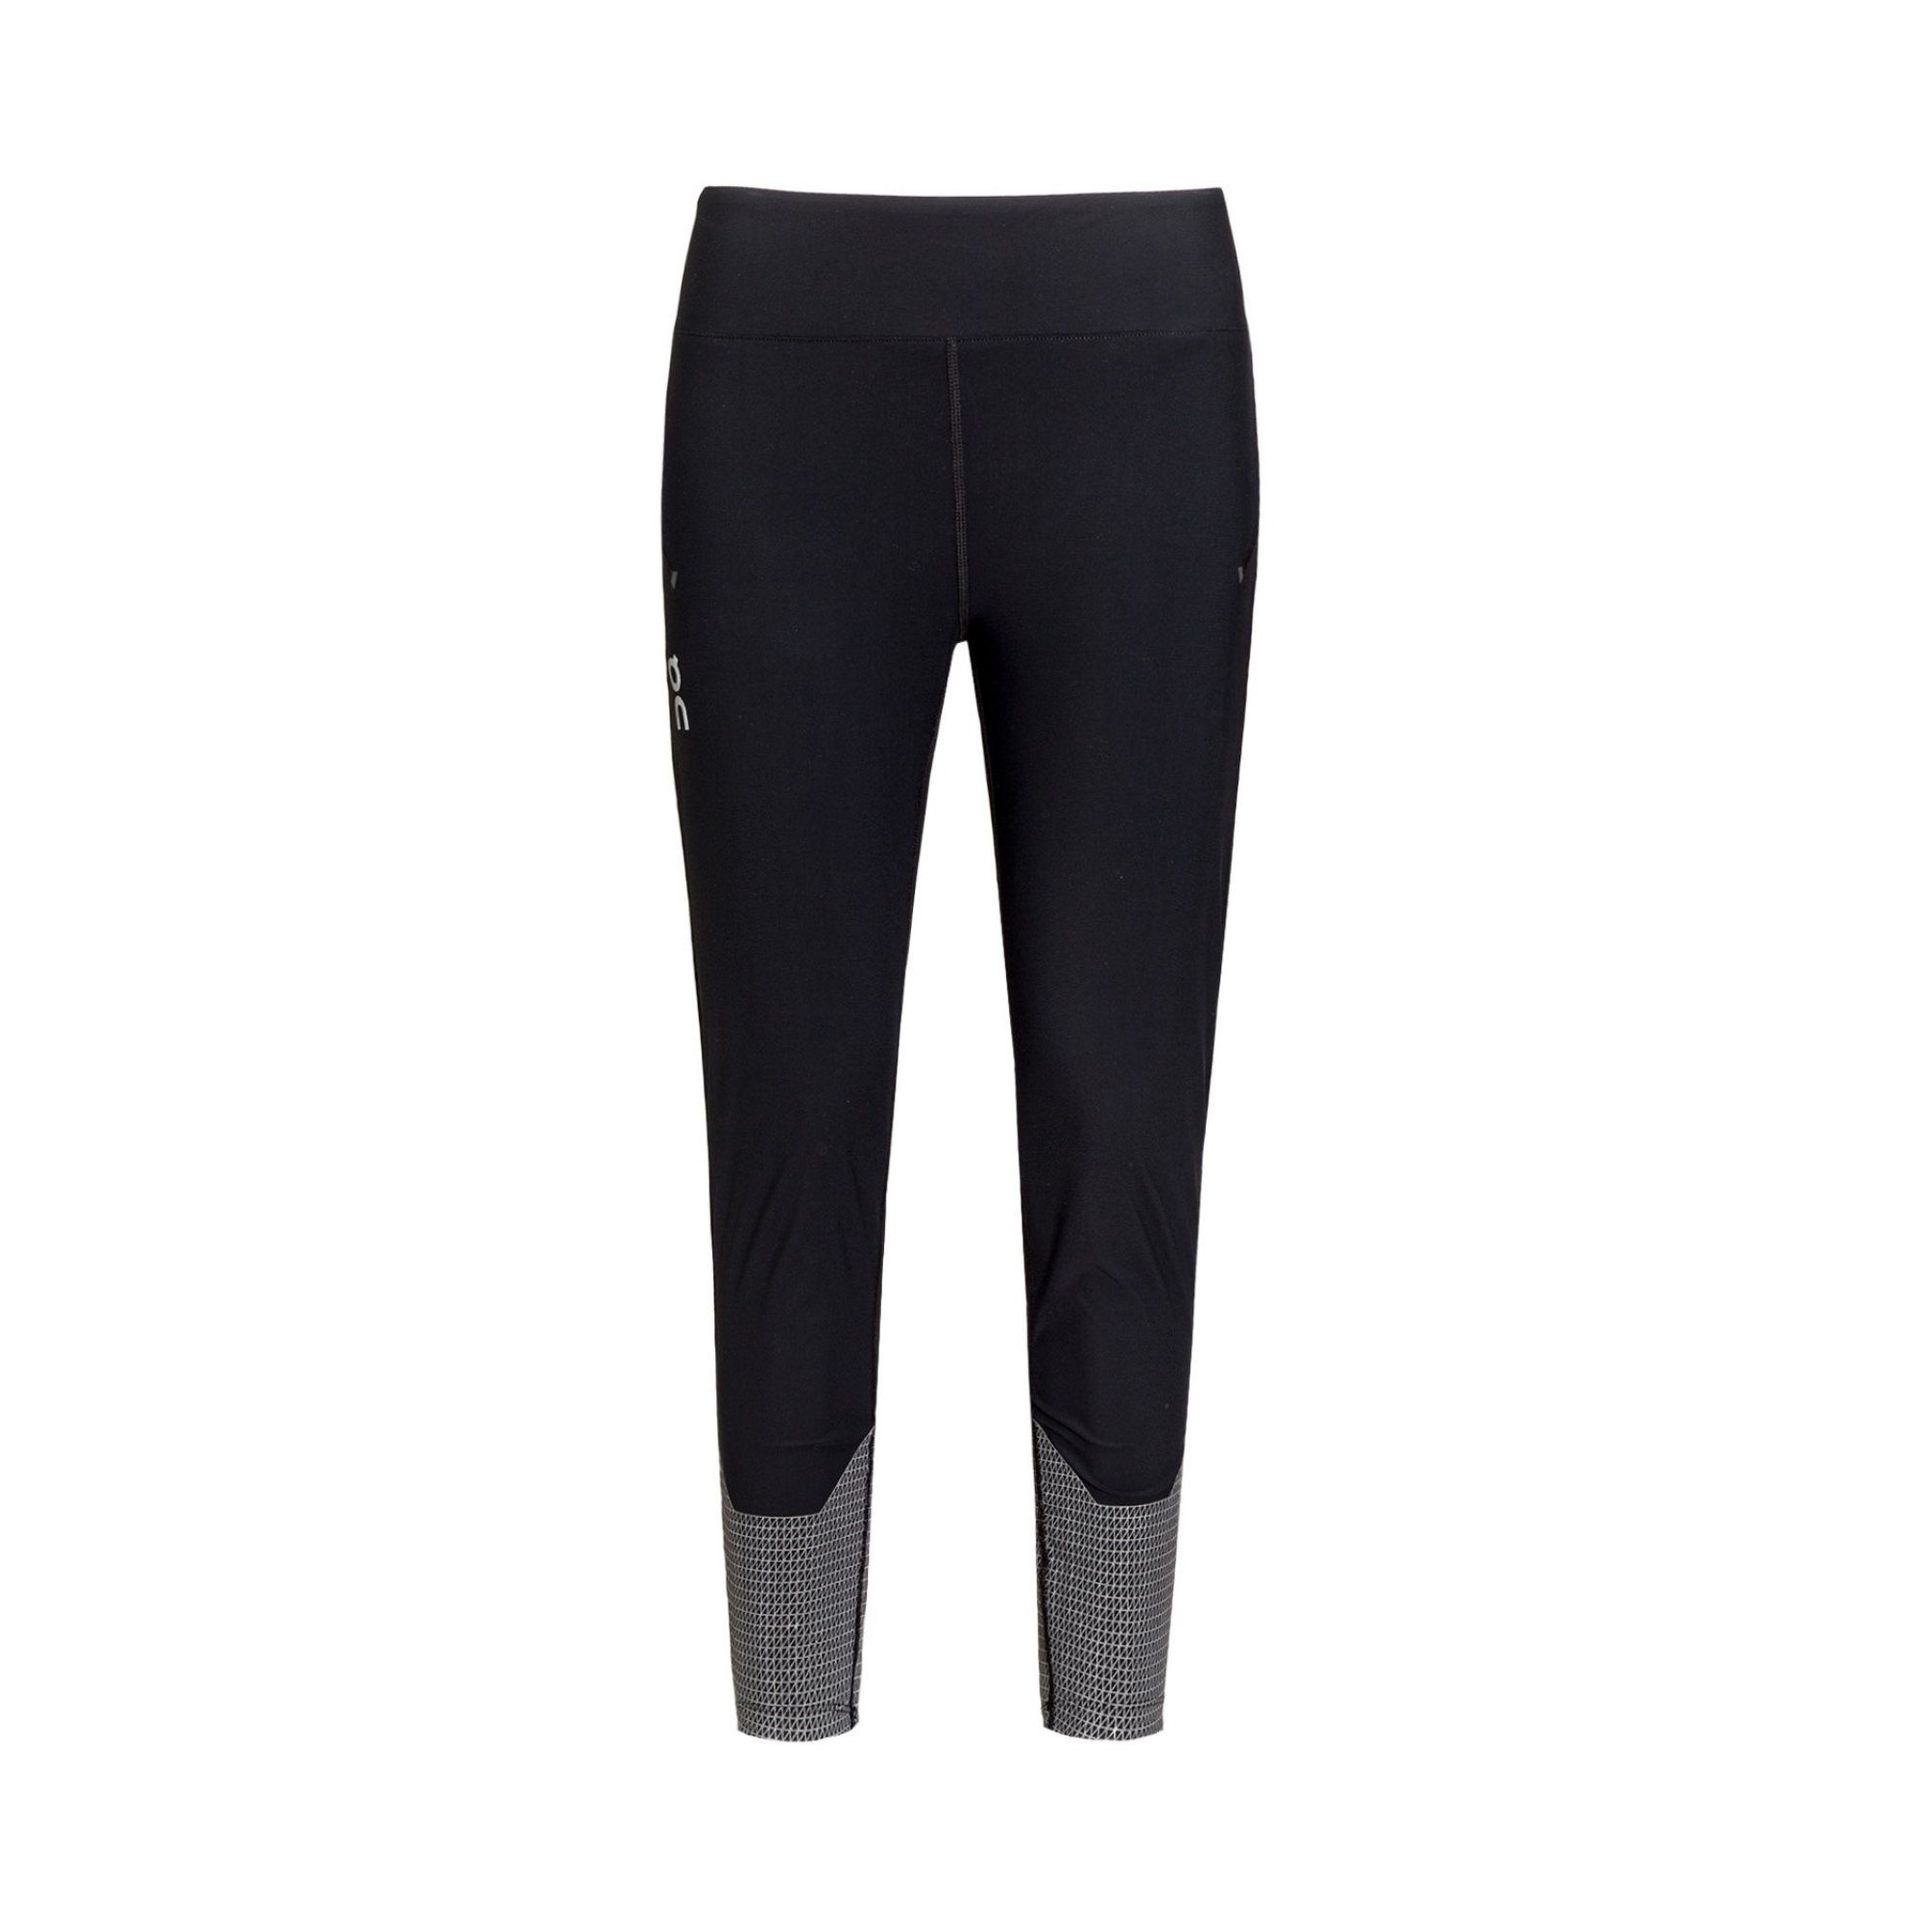 LEGGINSY ON RUNNING RUNNING TIGHTS BLACK